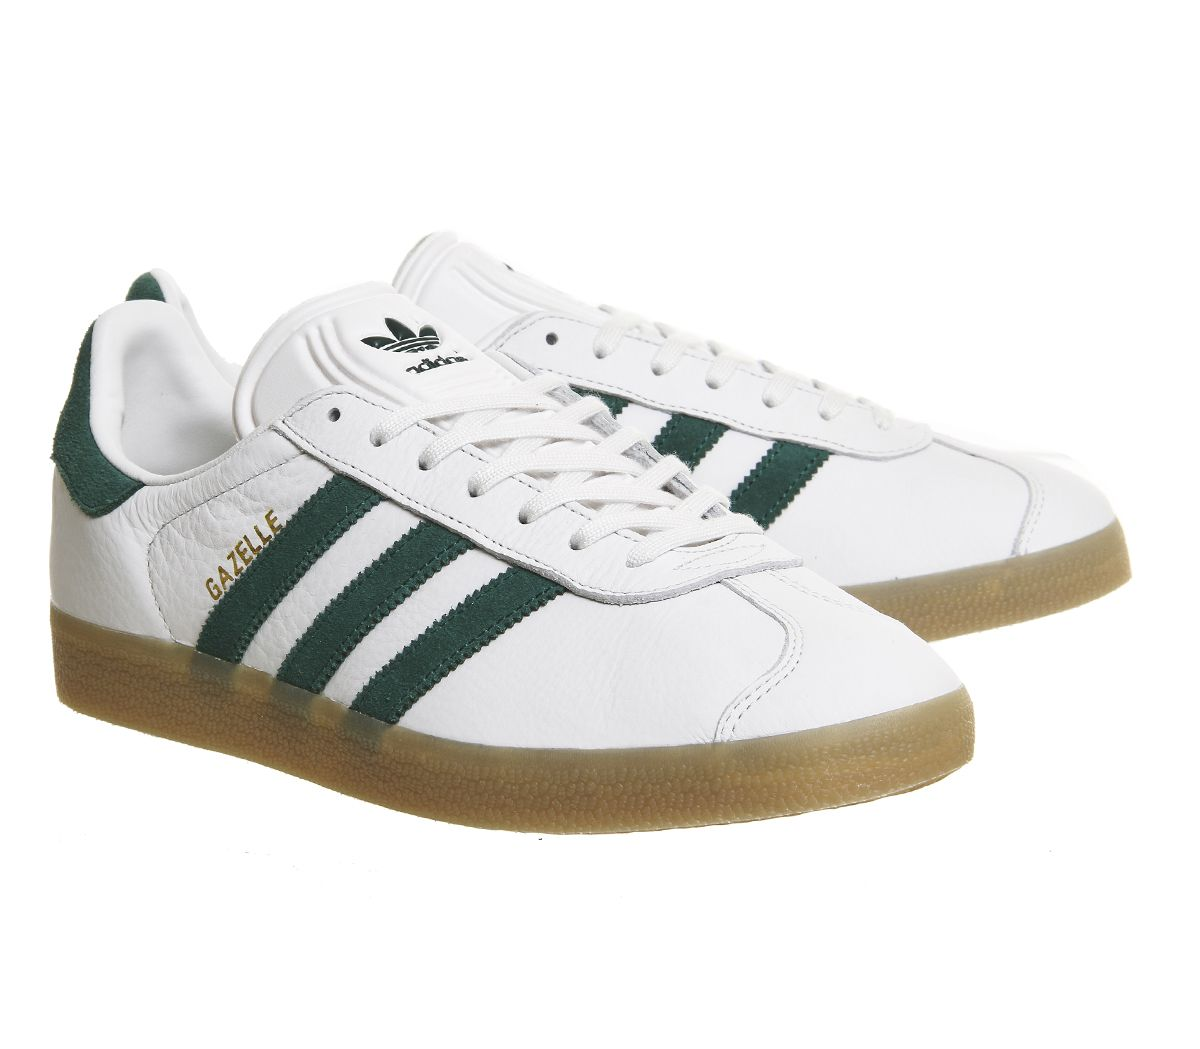 reputable site 0f870 b4618 Traditional leather Gazelles finished in Vintage White Green with a Gum  sole · Adidas GazelleAdidas OriginalsTrainersTerraceSneakerSoleOfficesTennis  ...